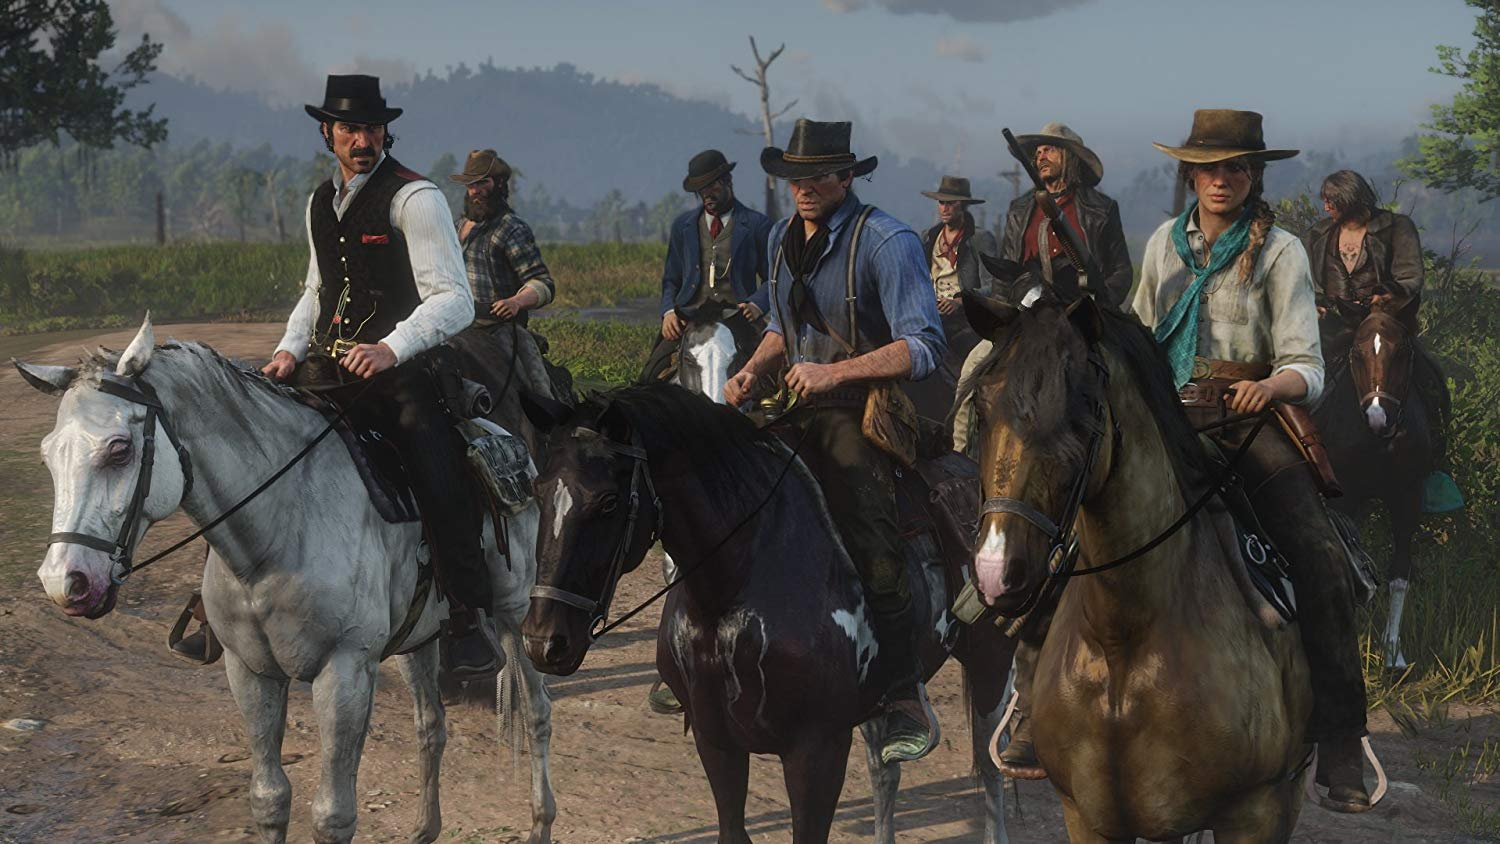 The Van Der Linde gang riding together with Dutch and Arthur leading the charge. Image from amazon.com